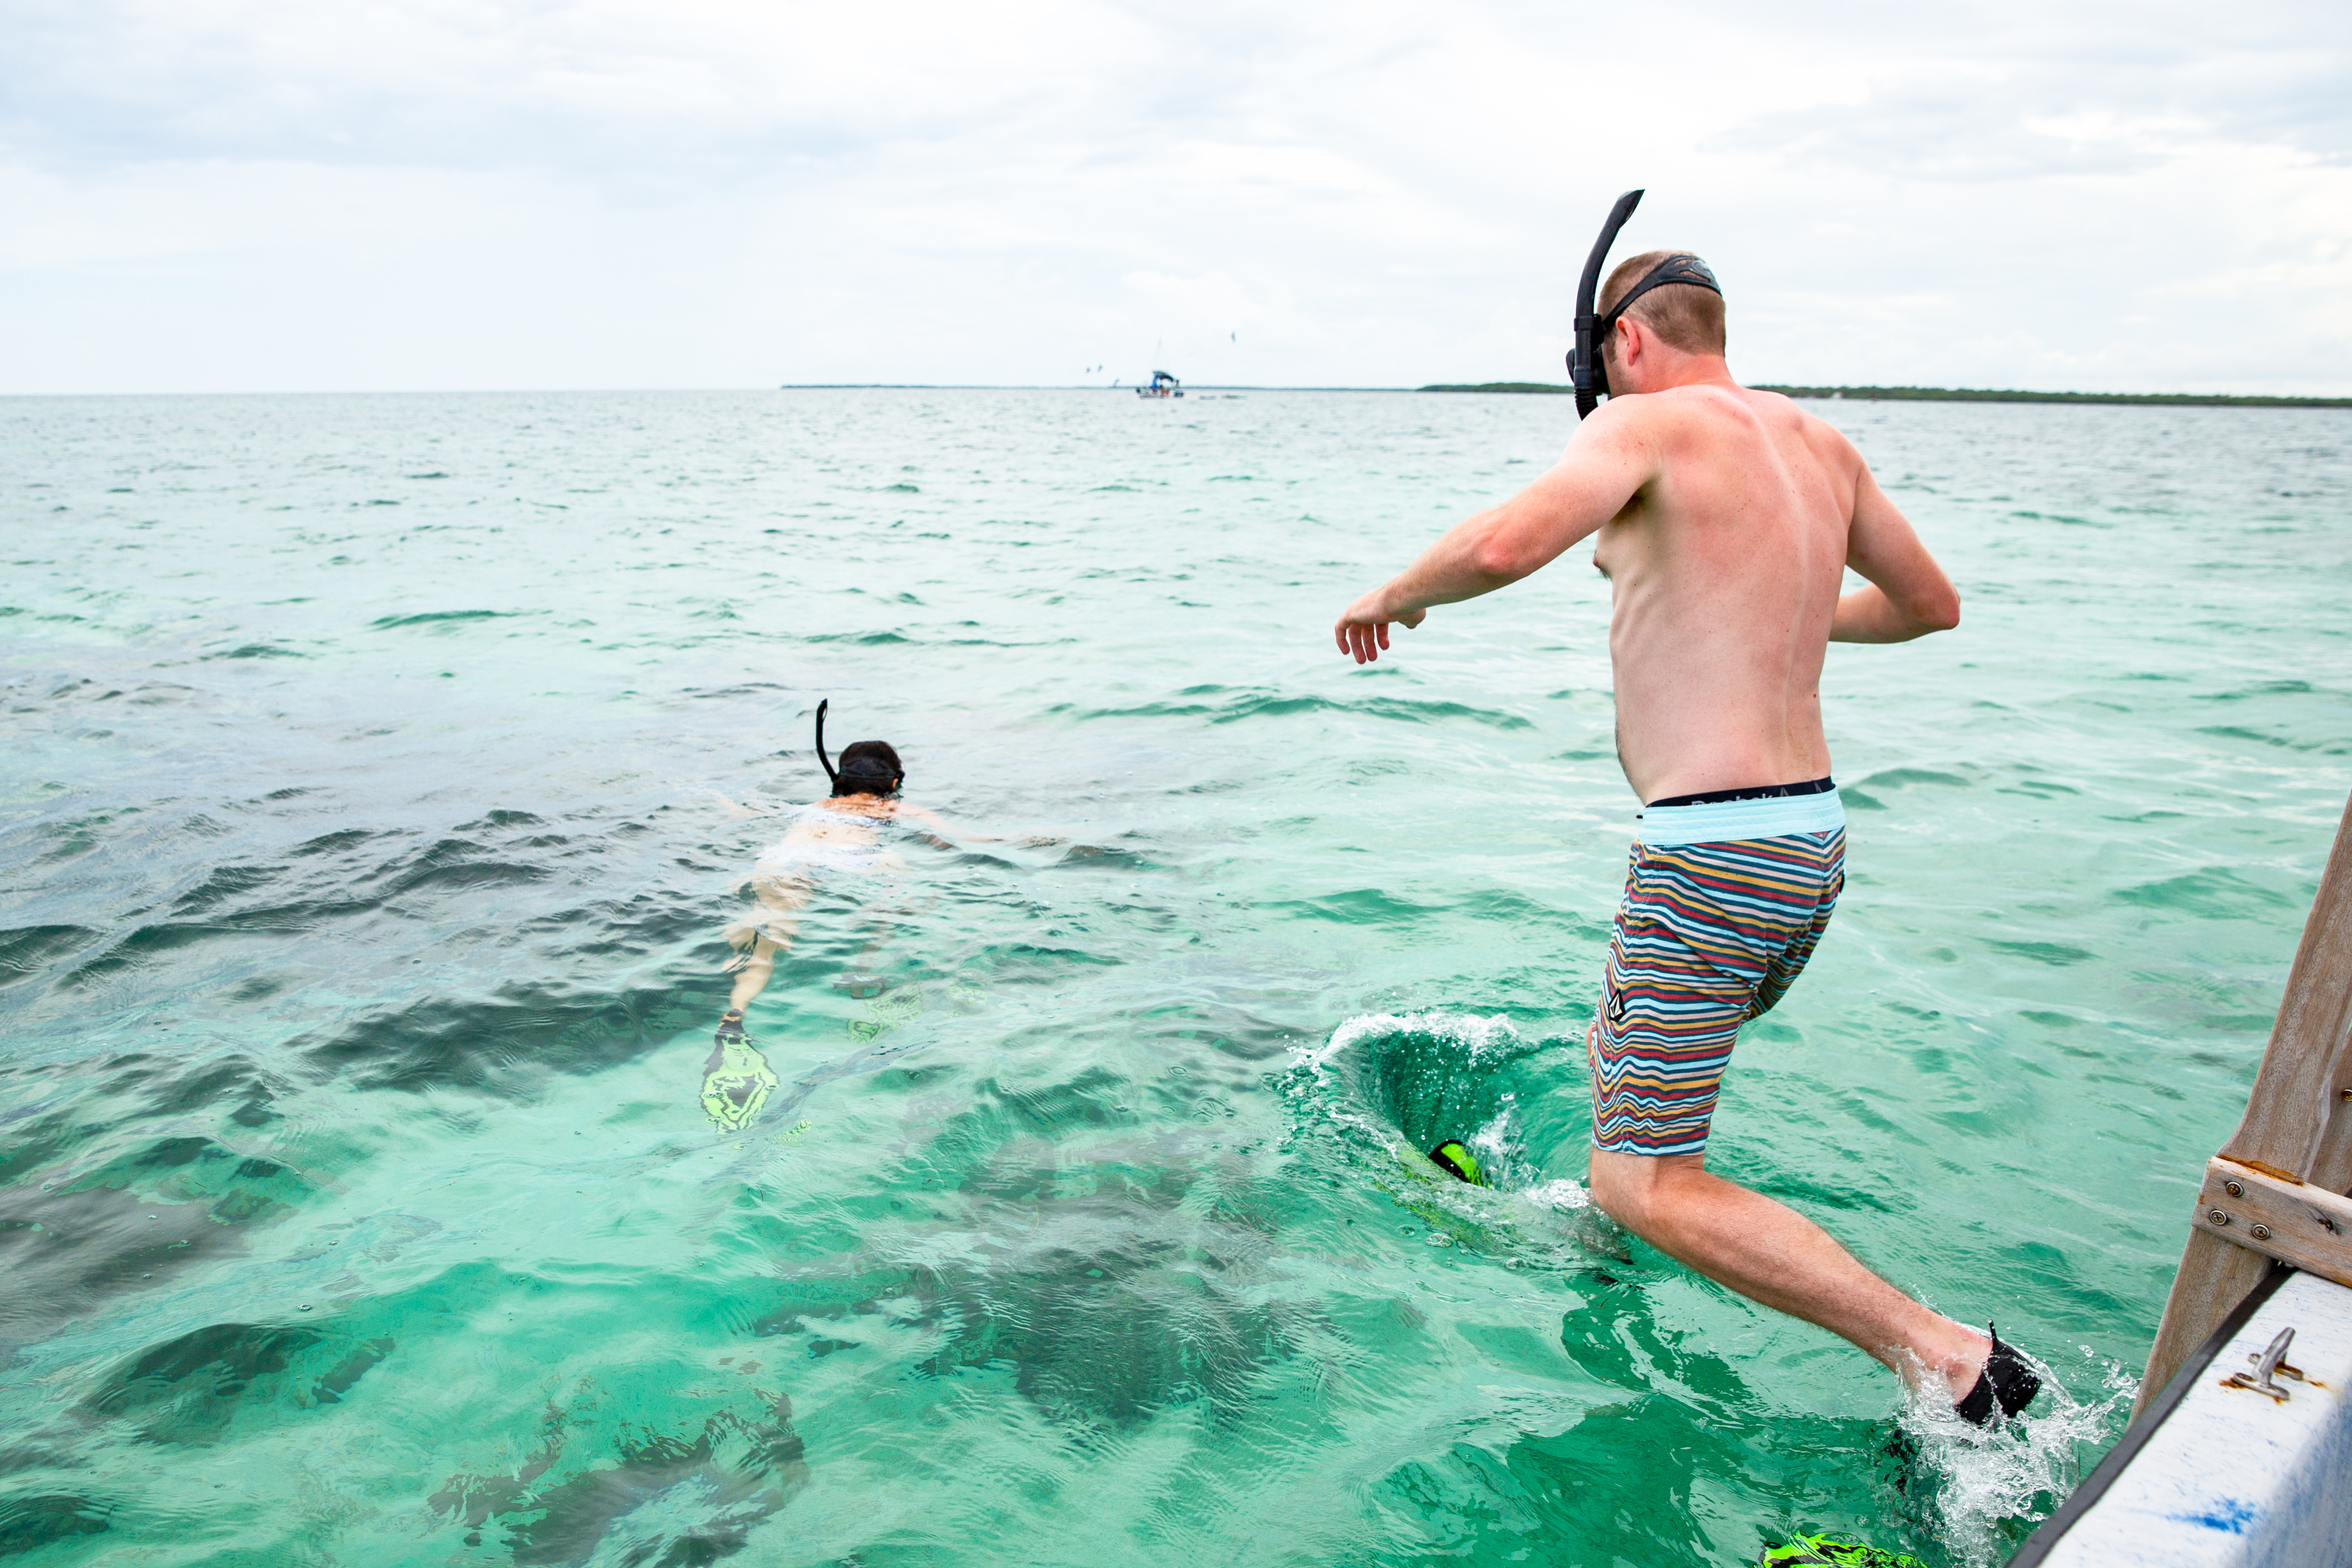 snorkeling in the caribbean sea in Belize